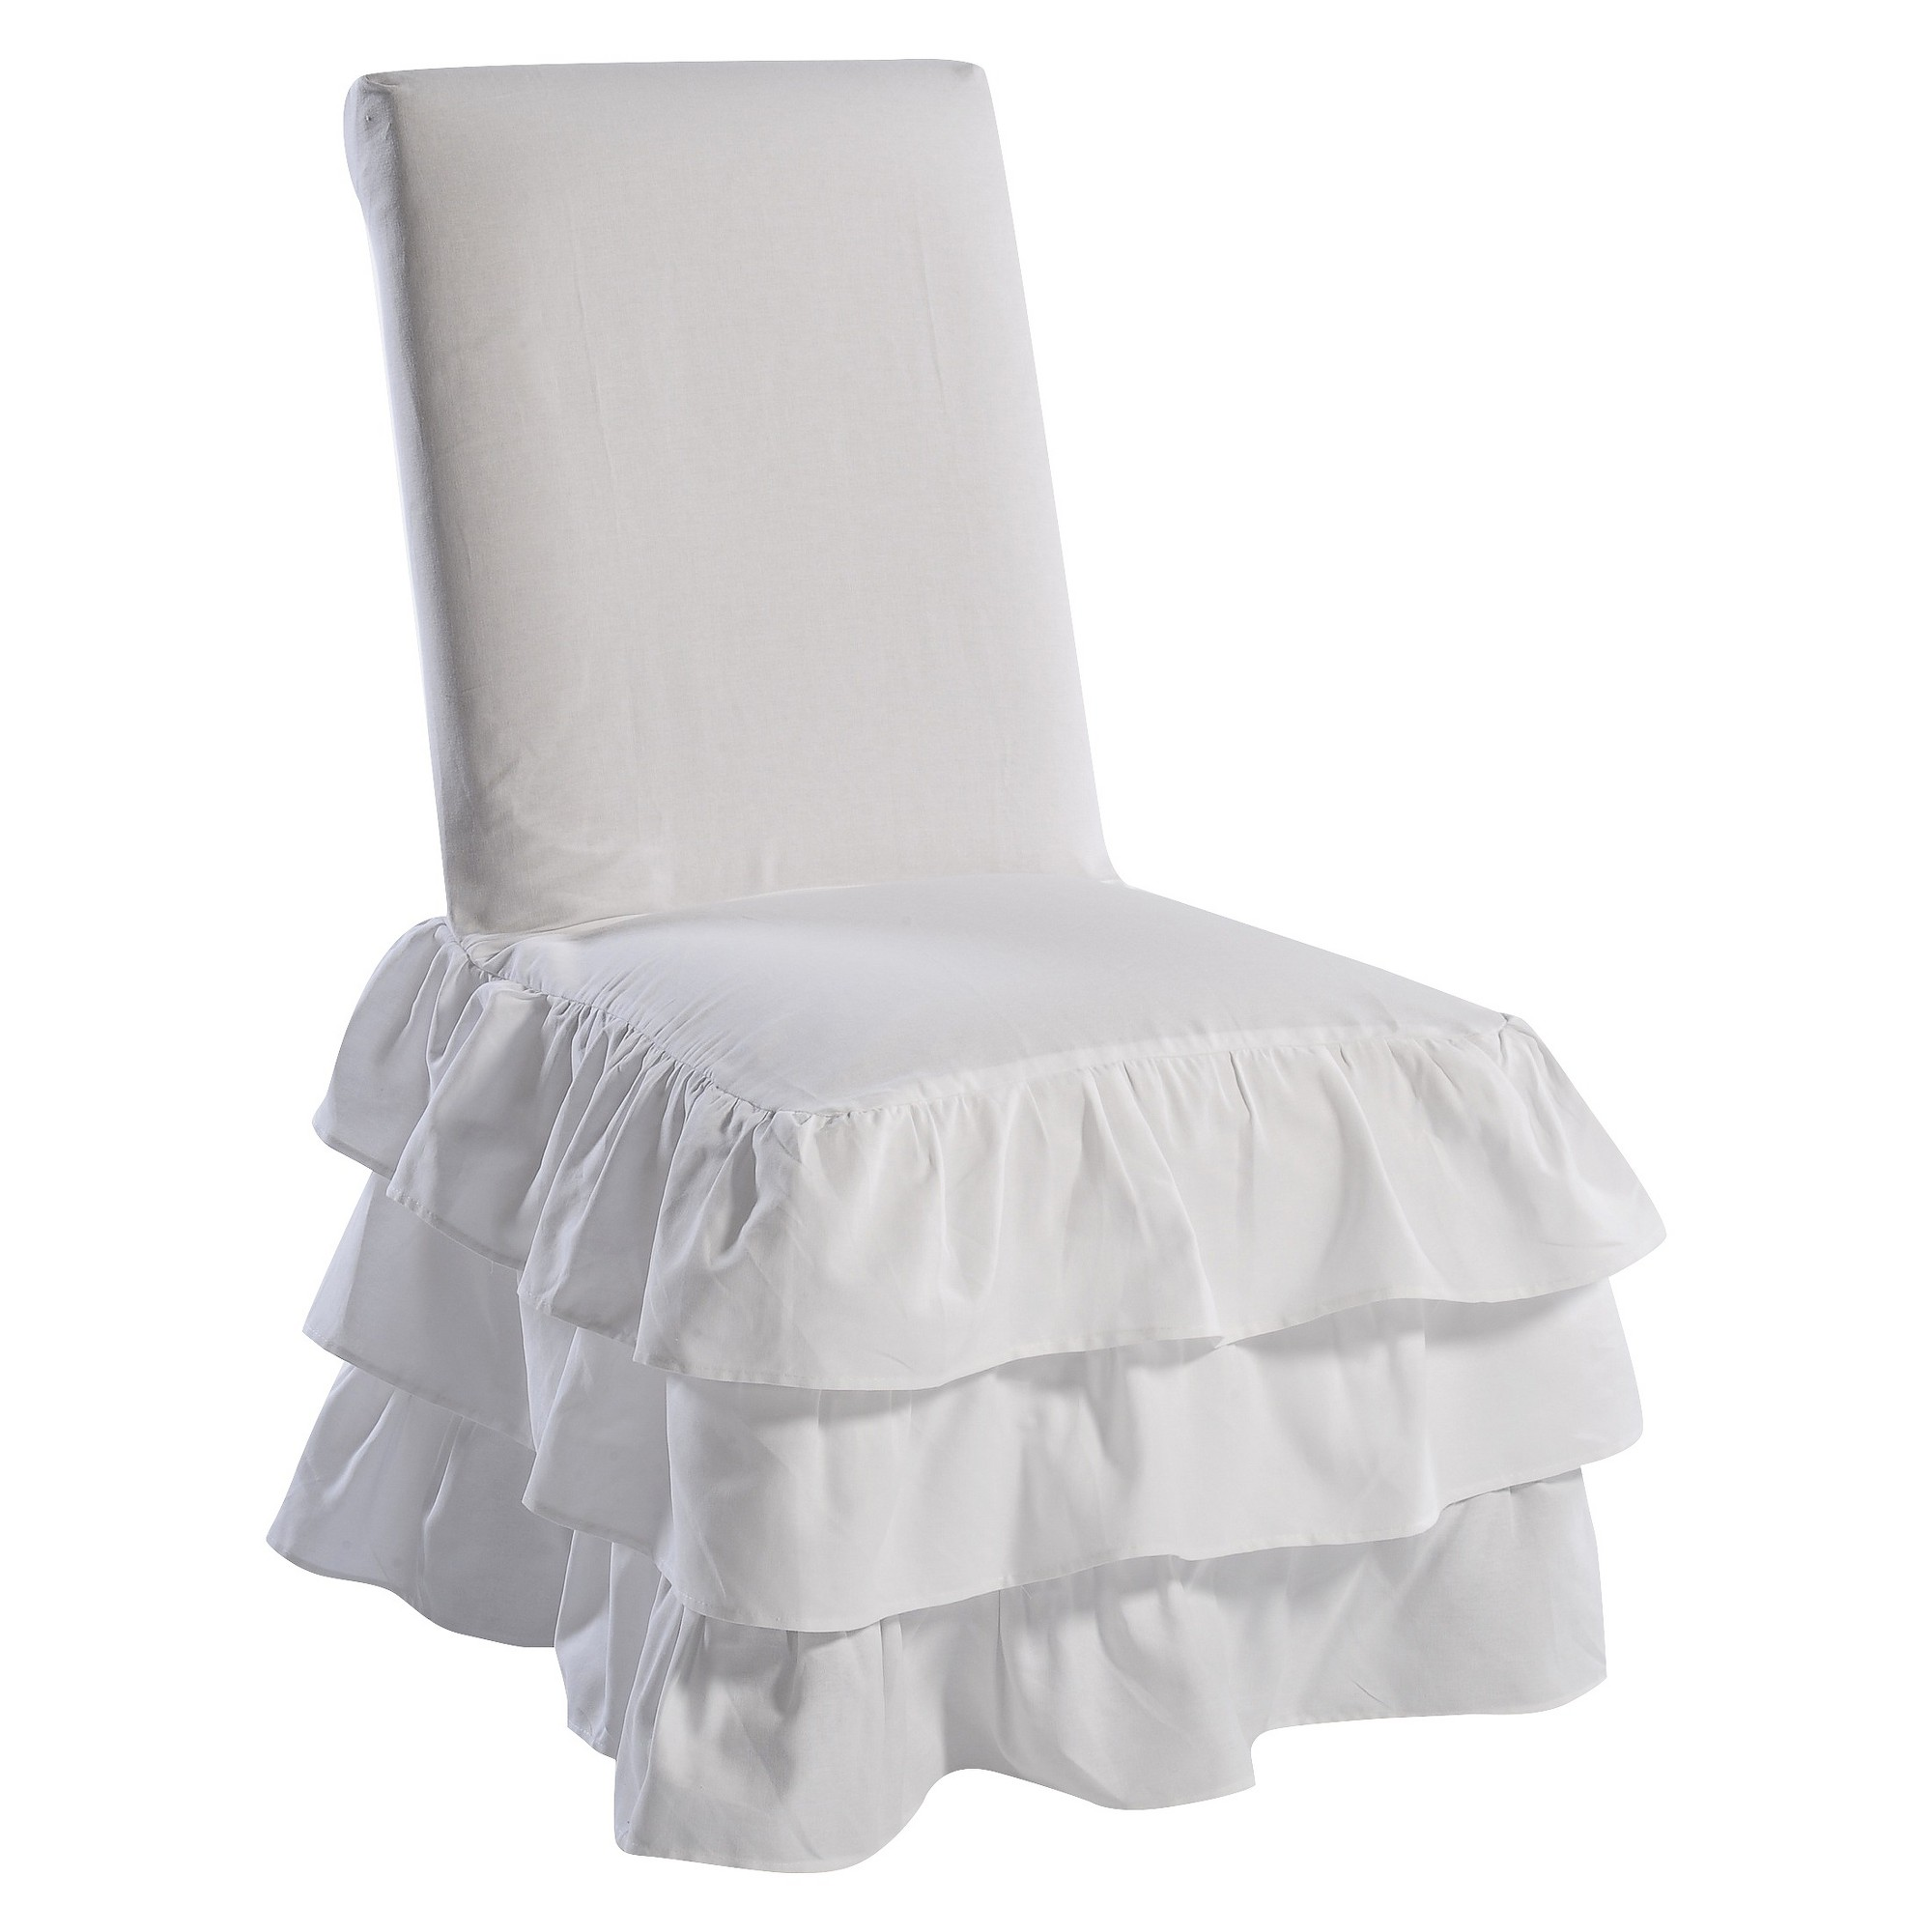 White Ruffle 3 Tiered Dining Chair Slipcover In 2019